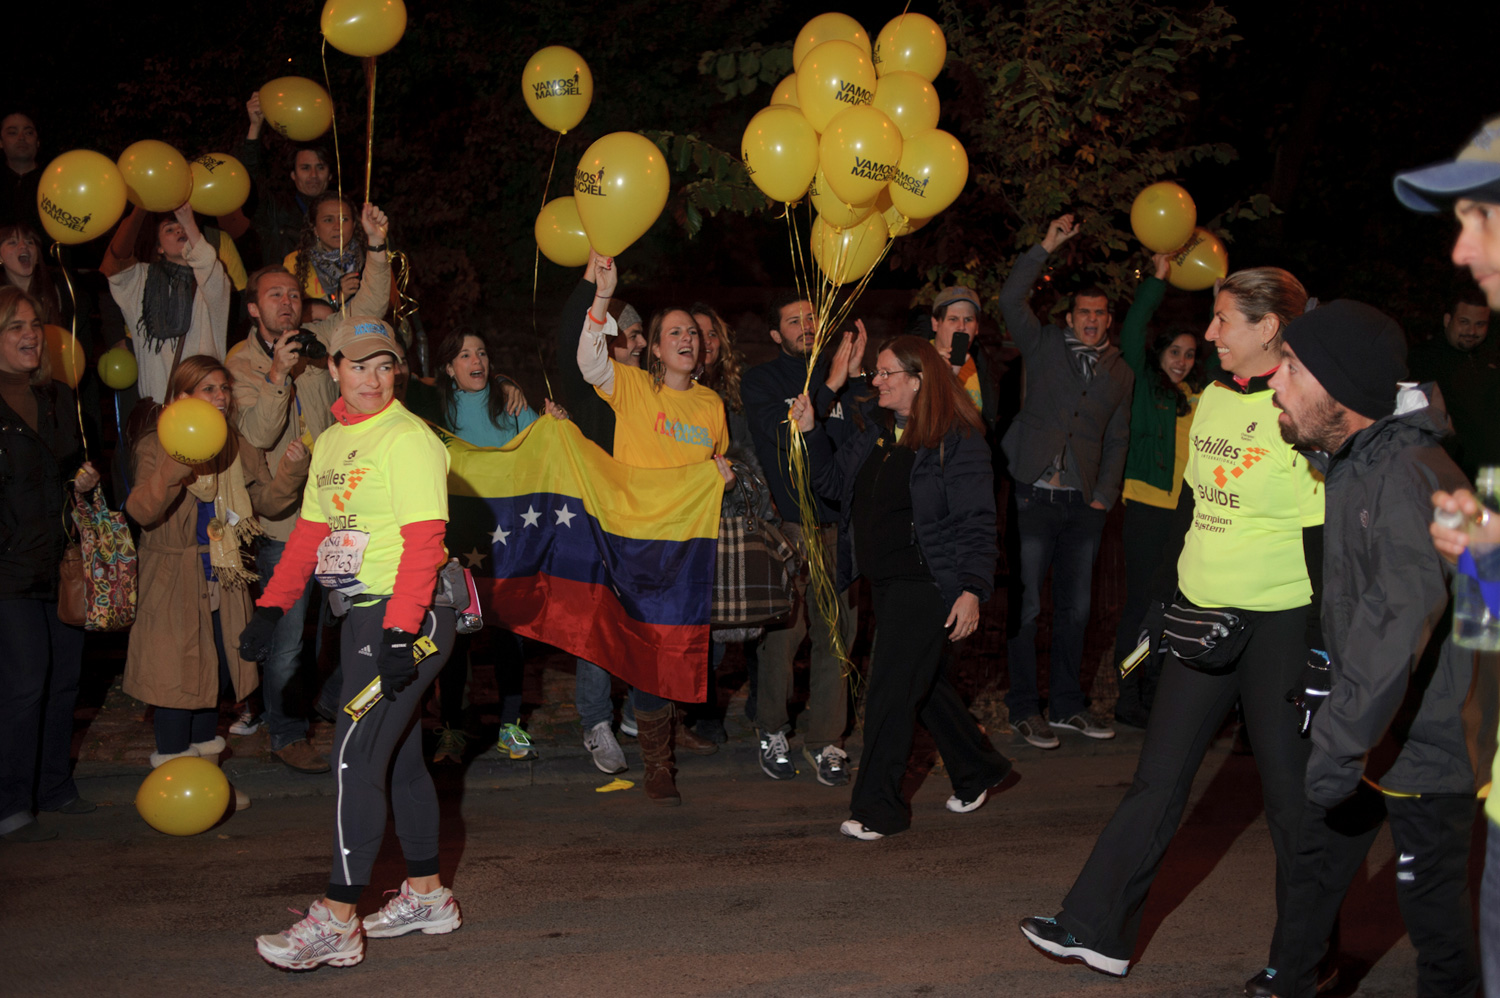 Melamed's friends, colleages and family cheer him on near the end. He completed the Nov. 6 race at 11:50 p.m., 15 hours and 22 minutes after he began. Nearly 350 people were waiting for him as he crossed the finish line.